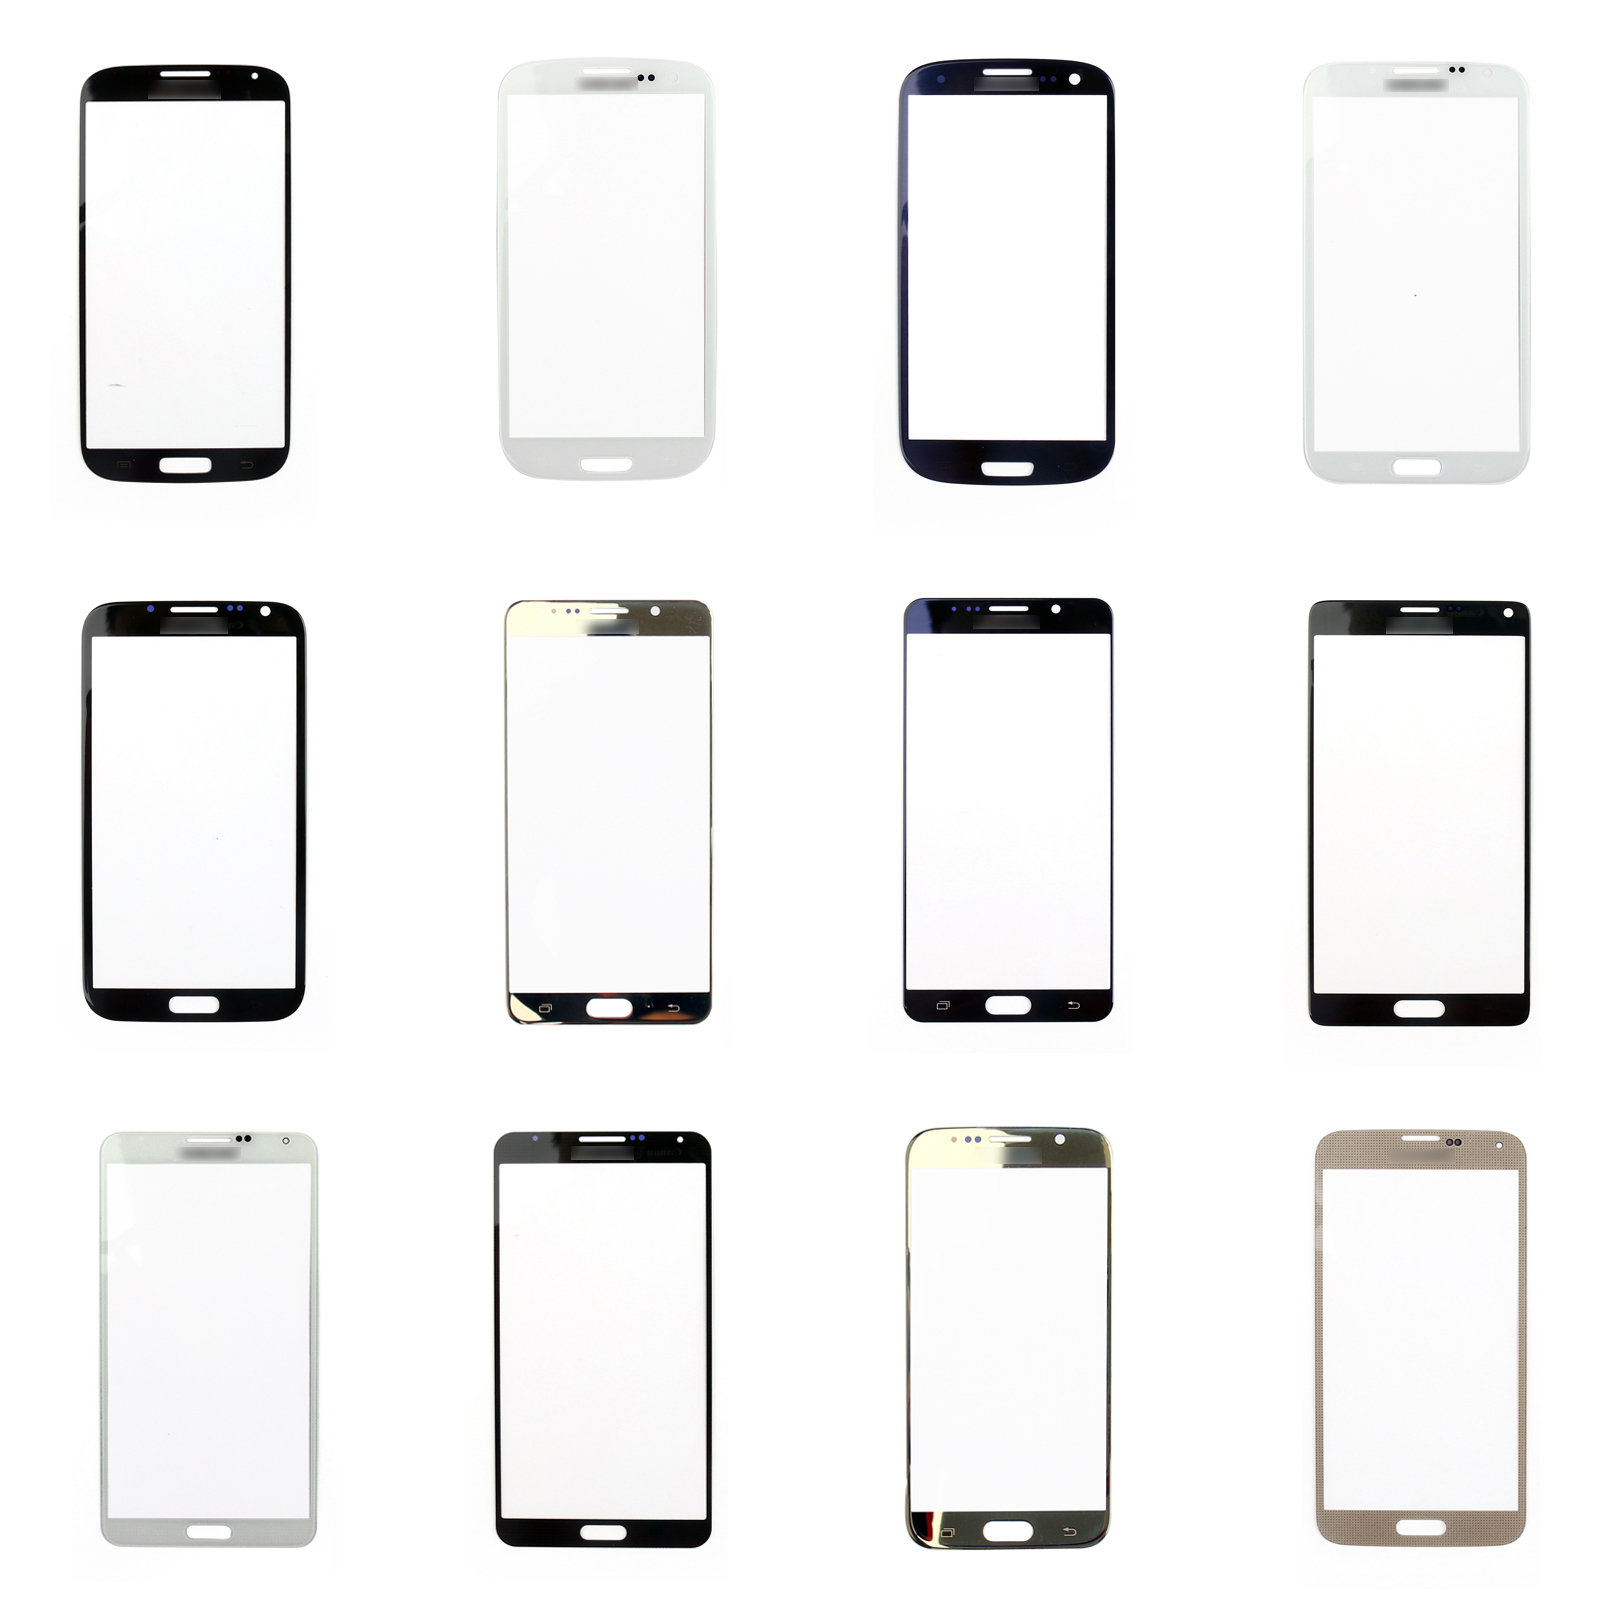 Samsung Patents Vertically Flexed Handset 412206 furthermore Lg G3 Samsung Galaxy S5 Oppo Find 5 Feature 2k Uhd Display Octa Core Cpu furthermore 272278113647 together with Scene Treasure For Iphone 7 besides S5 Connect Electric Trolley. on features samsung galaxy s5 screen